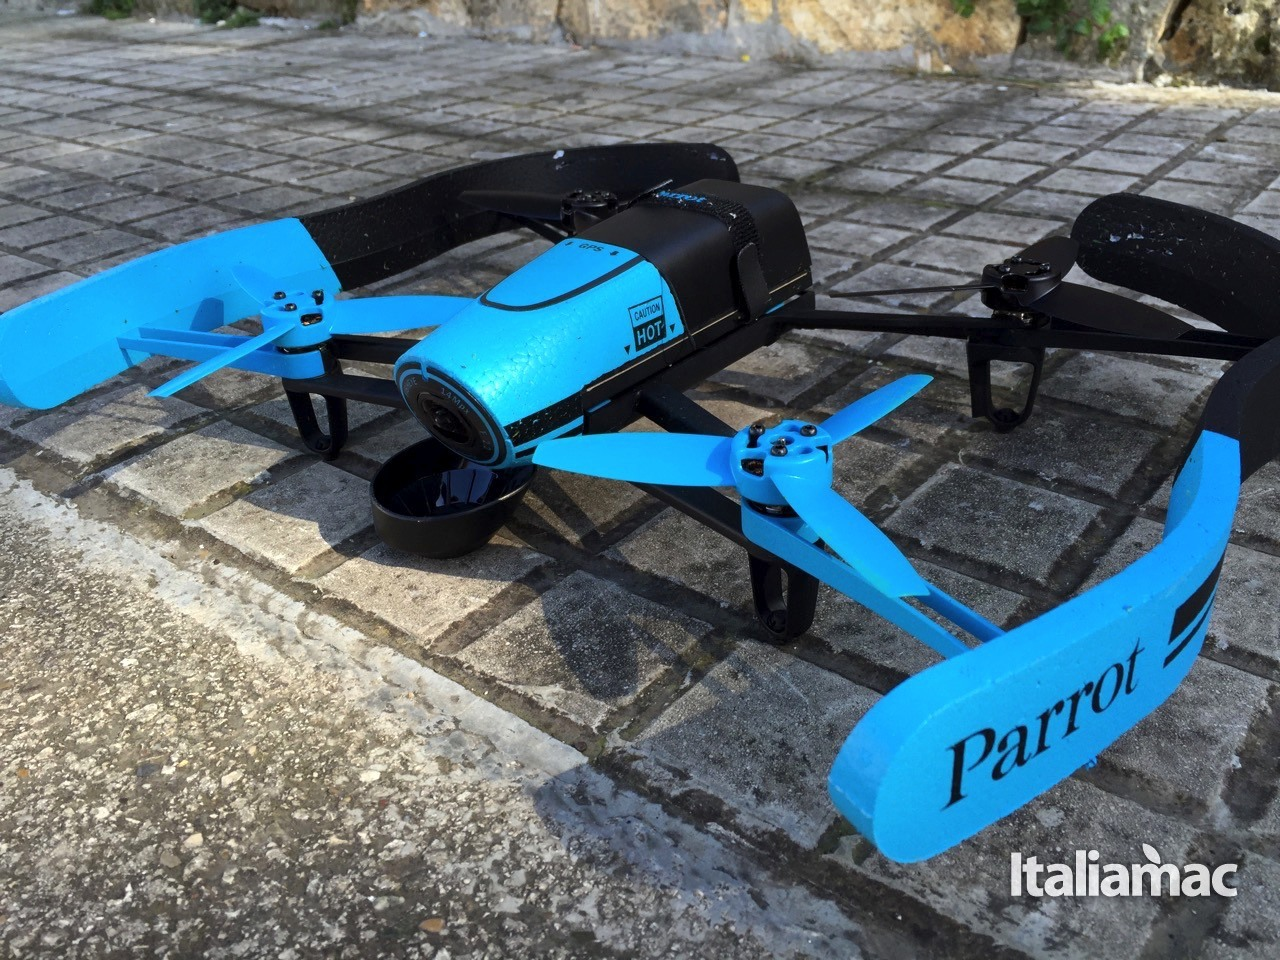 %name Parrot Bebop Drone, riprese aeree a 180° in Full HD